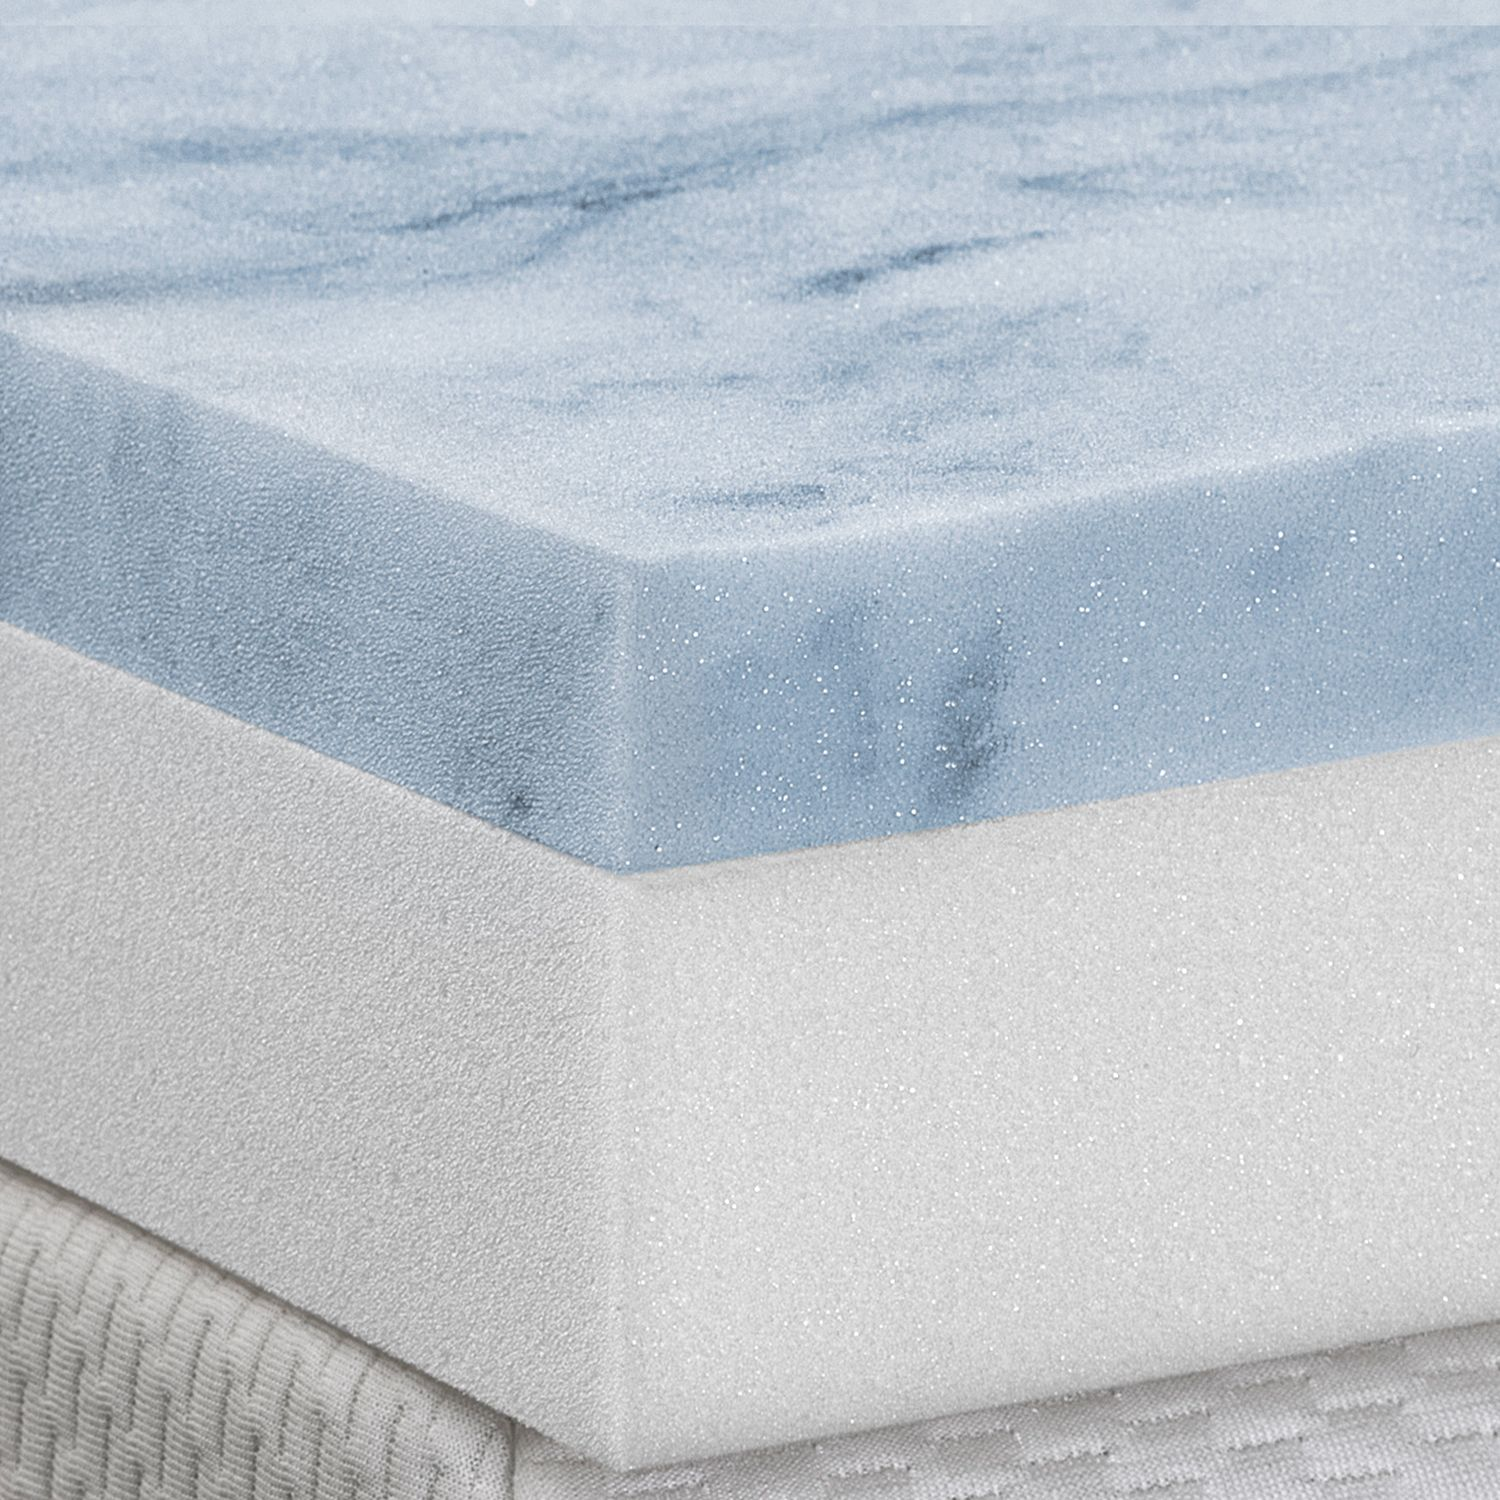 4inch gel memory foam mattress topper